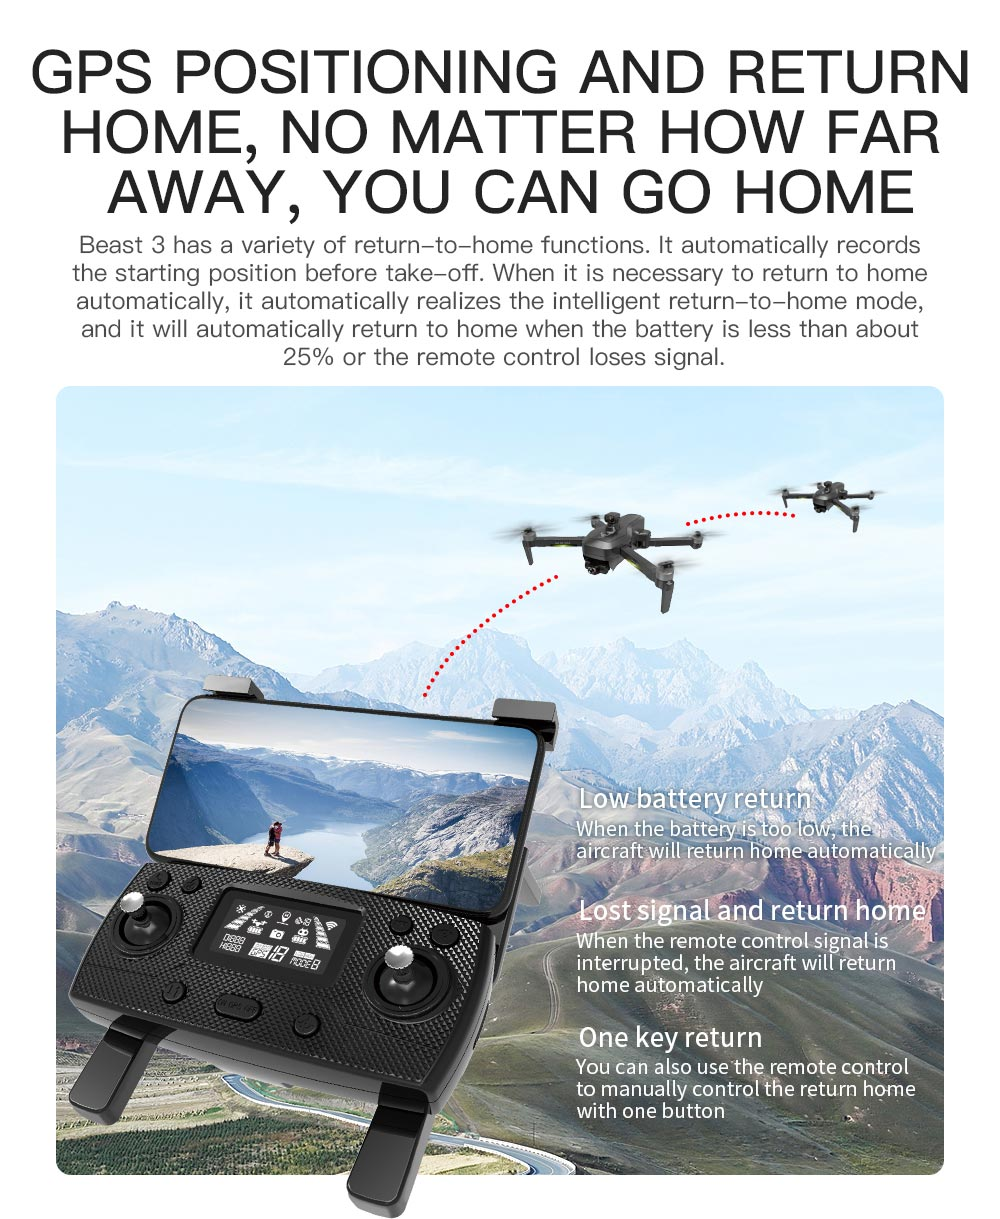 ZLRC SG906 Pro 3 MAX 4K GPS 5G WIFI FPV with 3-Axis EIS Anti-shake Gimbal Obstacle Avoidance Brushless RC Drone - Two Batteries with Bag